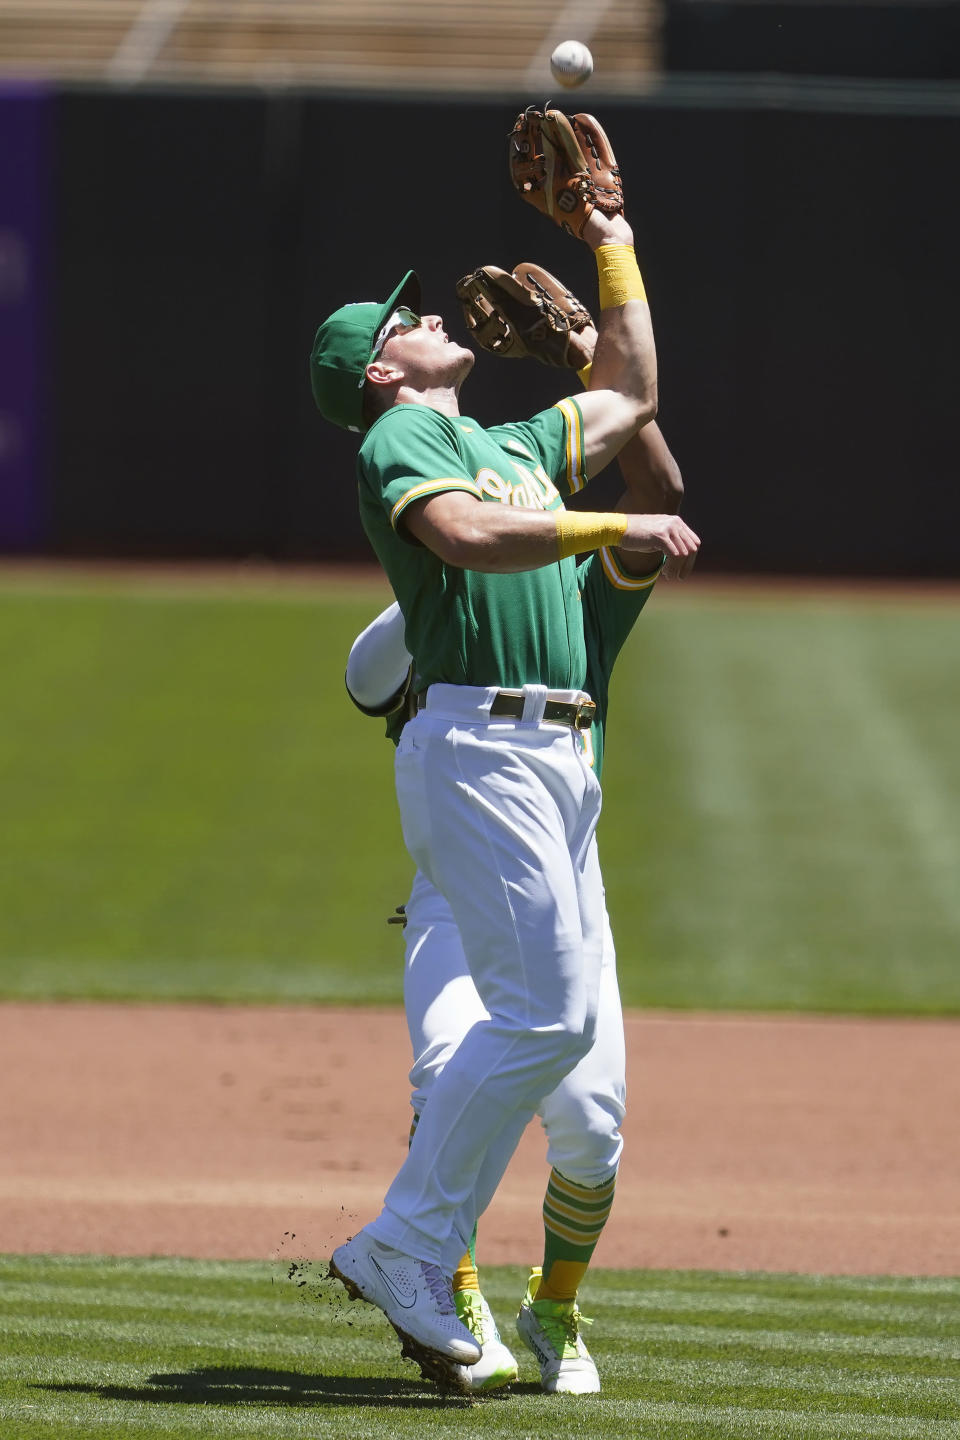 Oakland Athletics third baseman Matt Chapman, foreground, catches a pop out hit by Kansas City Royals' Carlos Santana in front of second baseman Tony Kemp during the first inning of a baseball game in Oakland, Calif., Sunday, June 13, 2021. (AP Photo/Jeff Chiu)